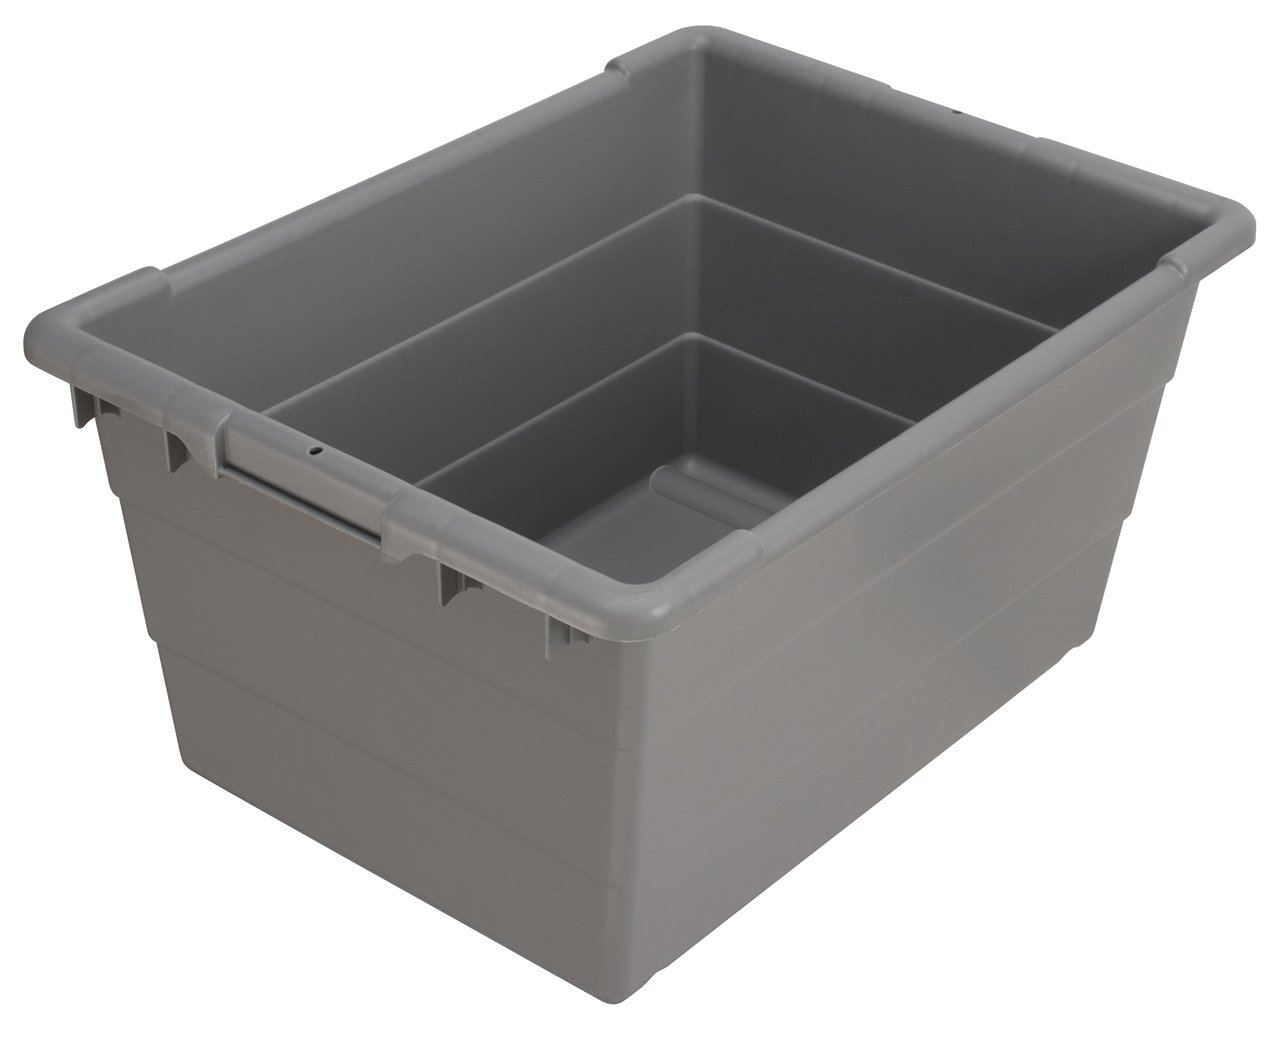 Akro-Mils 34304 Cross-Stack Plastic Tote Tub, 24-Inch by 17-Inch by 12-Inch, Case of 6, Grey